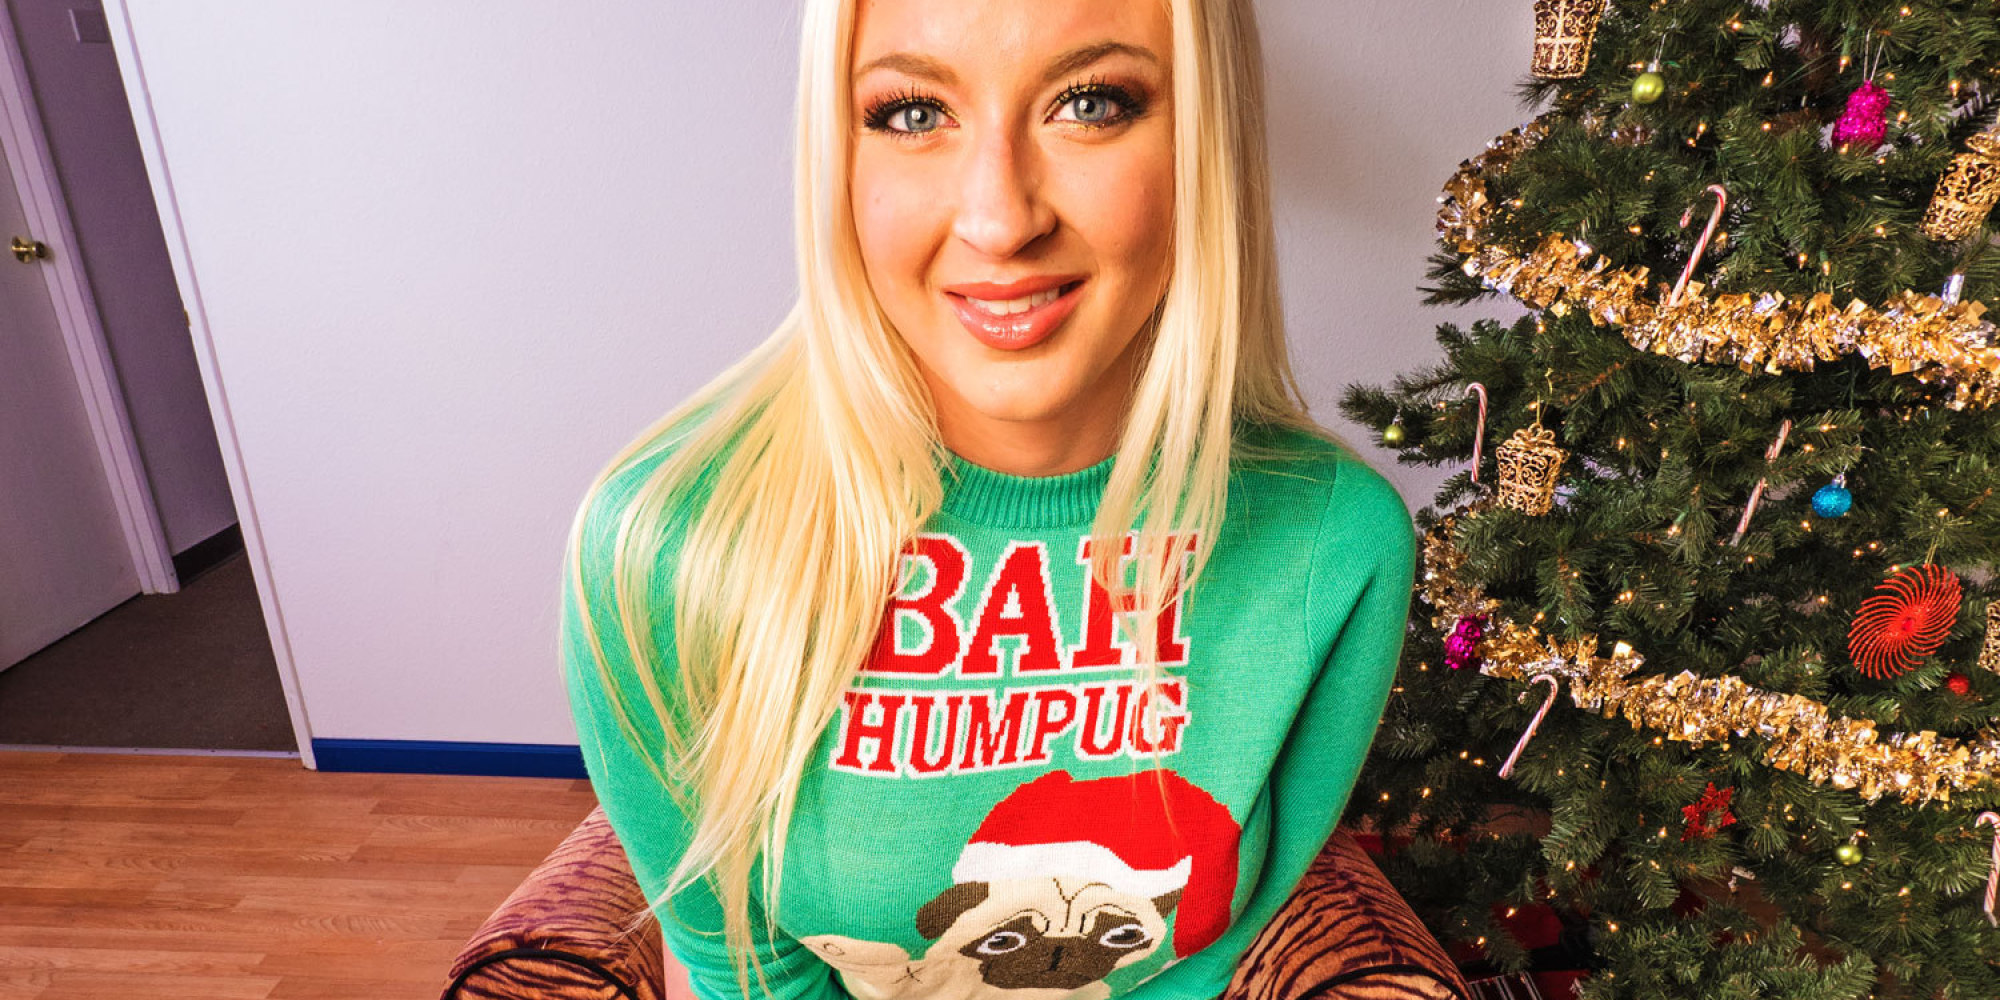 Porn Stars In Holiday Sweaters Put The X In Xmas   HuffPost